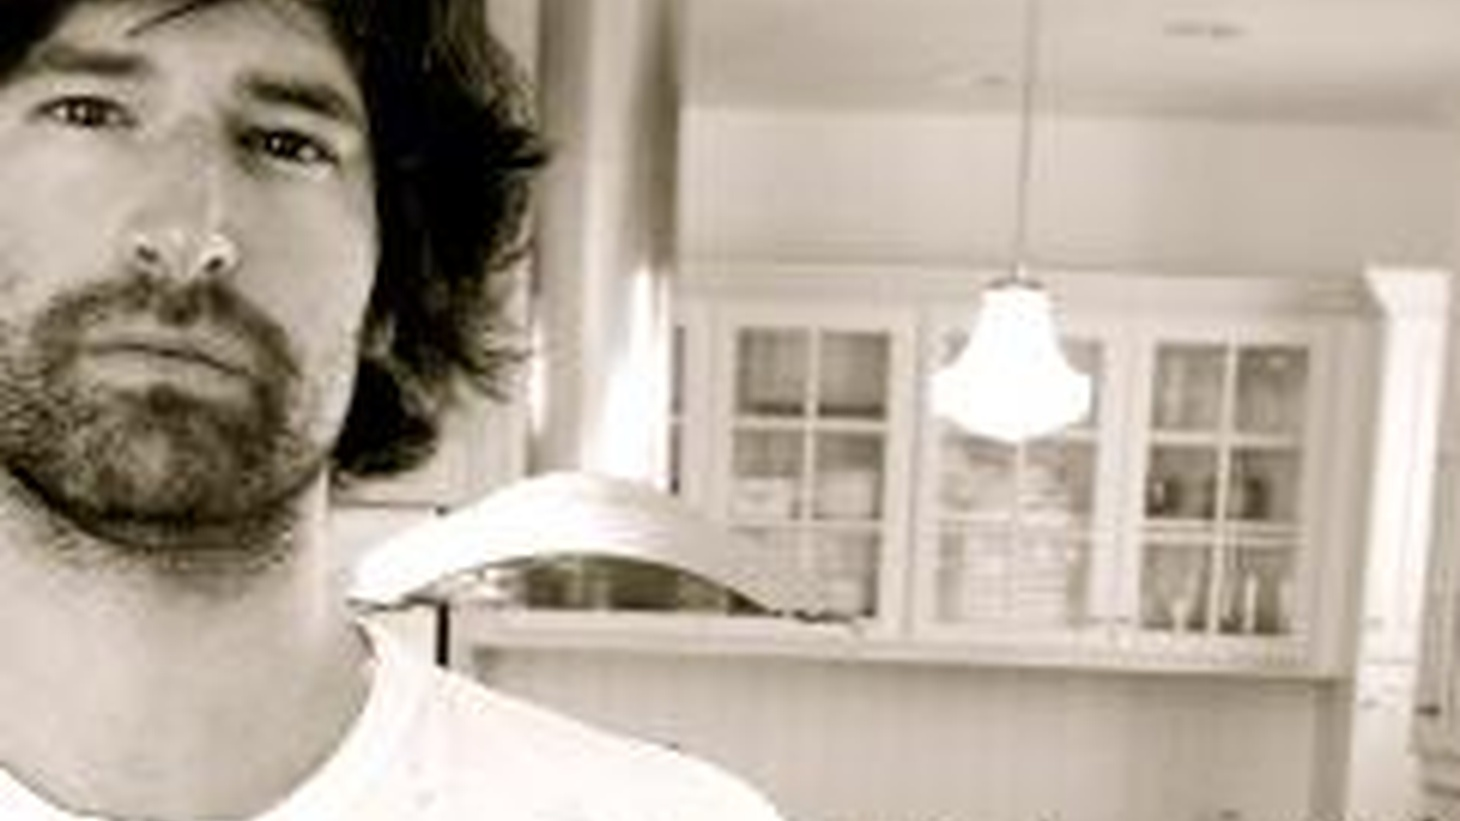 Pete Yorn performs songs from his new CD Back and Fourth on Morning Becomes Eclectic at 11:15am. Anne Litt sits in for Jason Bentley from 9am to noon.